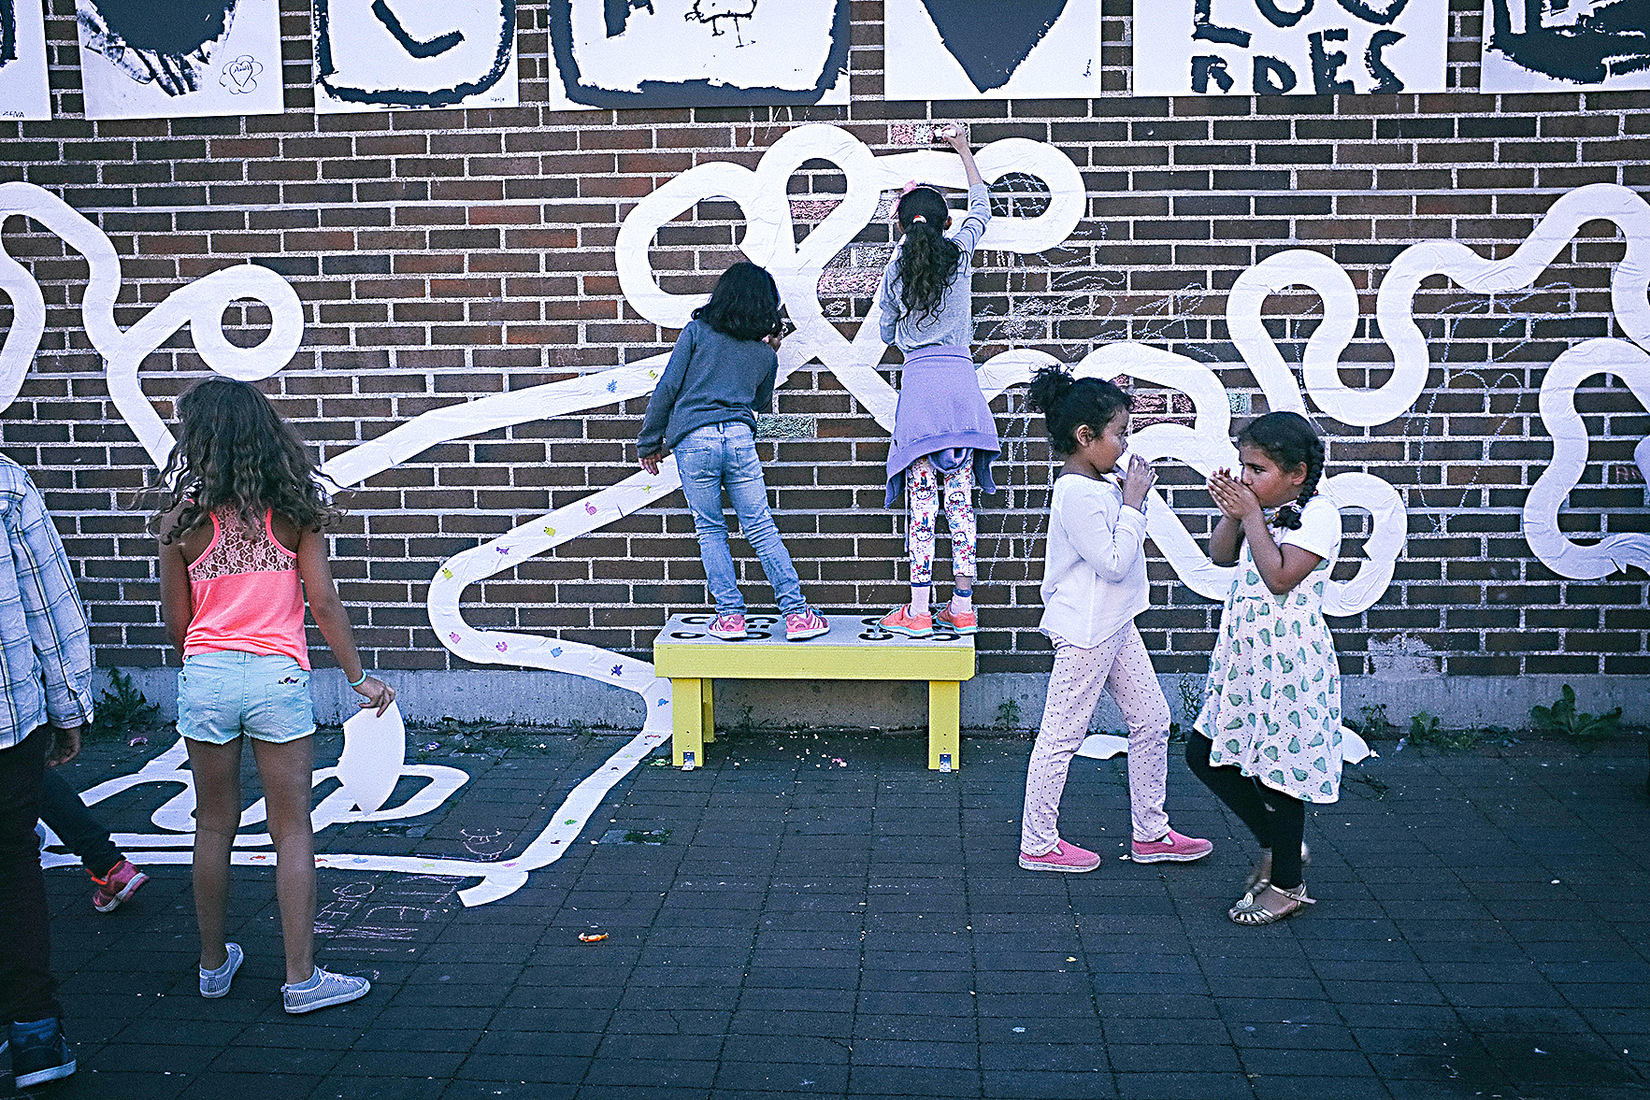 Children playing outsdide and writing on a wall